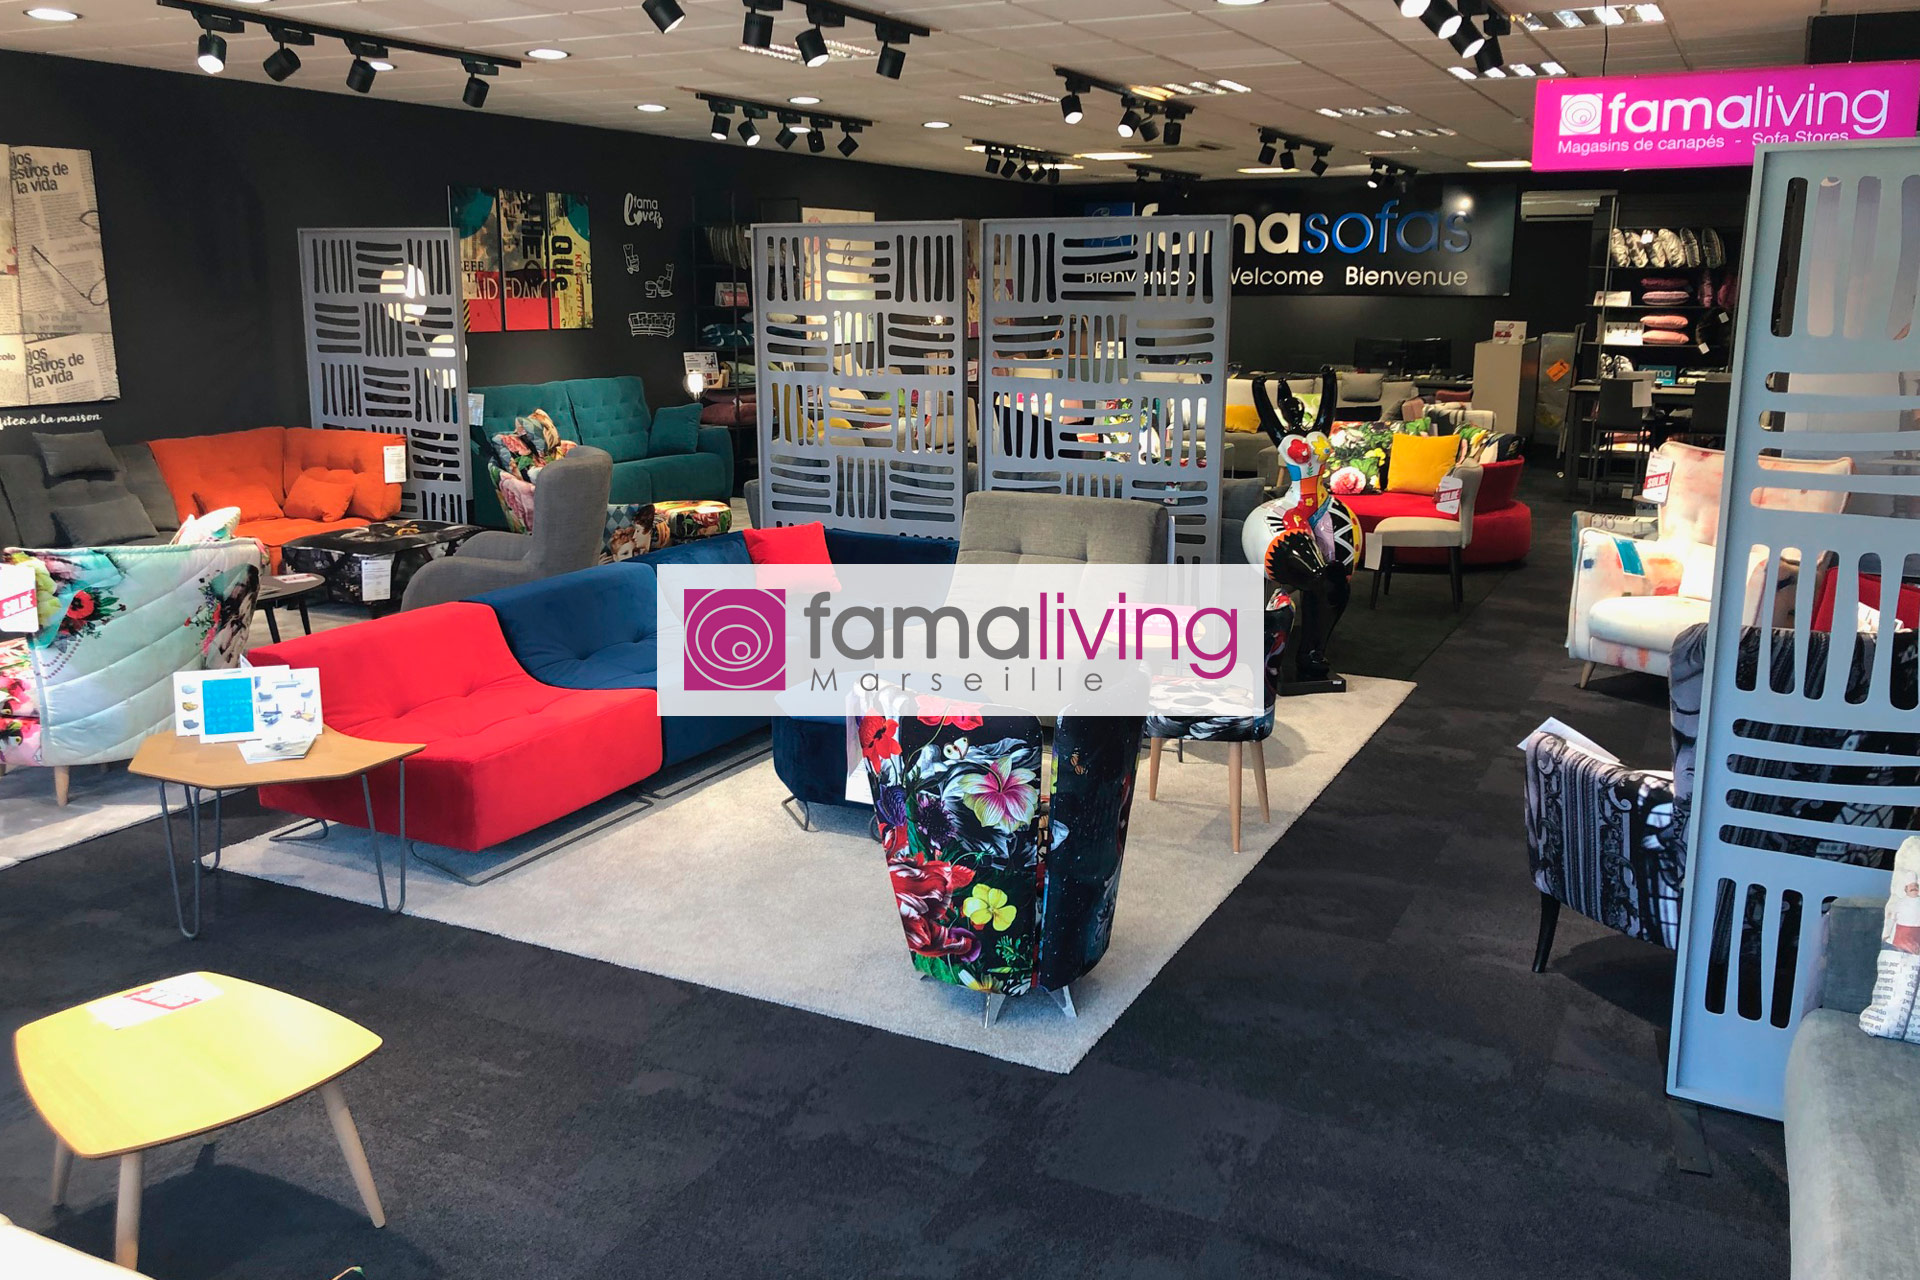 https://www.famaliving.com/marseille-en